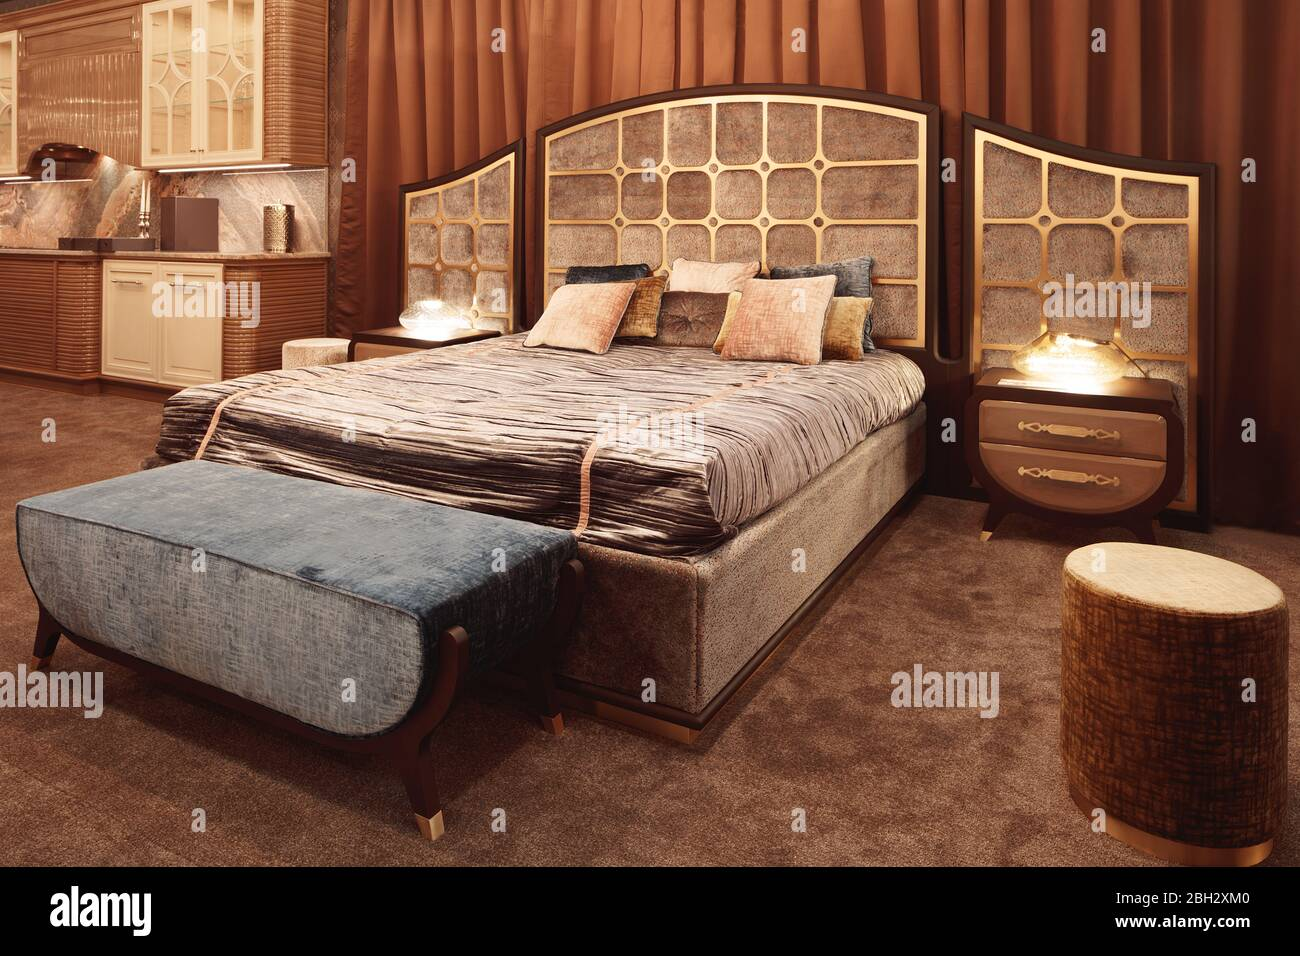 Hotel Service Concept Luxurious Bedroom With Bed And Bedside Tables And A Mirror Concept Interior Home Comfort Hotel Stock Photo Alamy